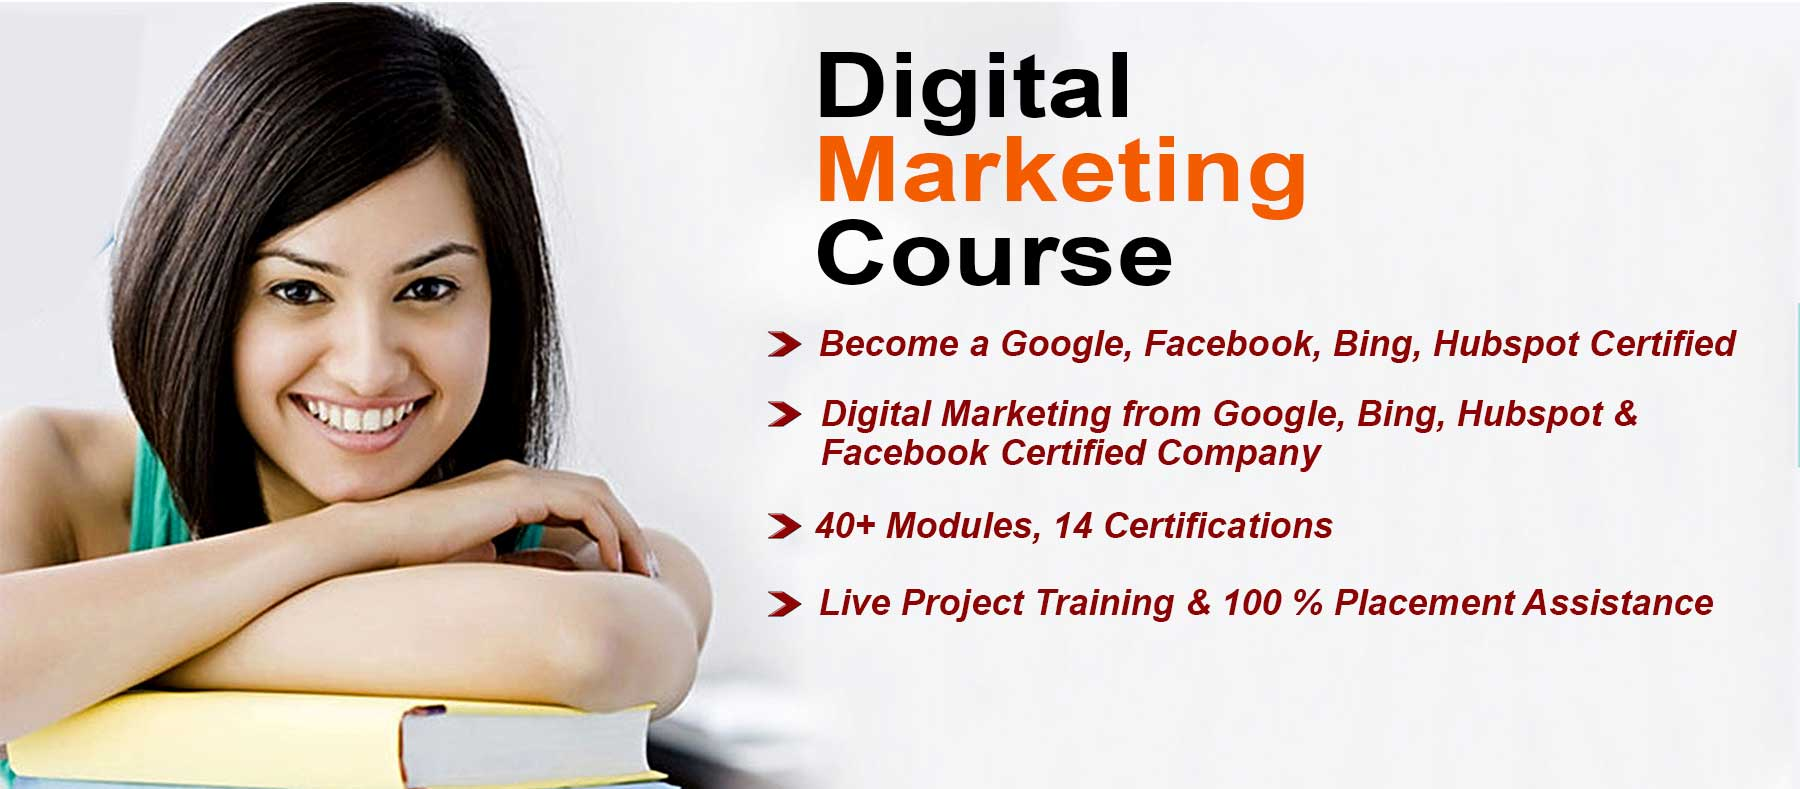 Top 5 Digital Marketing Training Course in Chandigarh Mohali